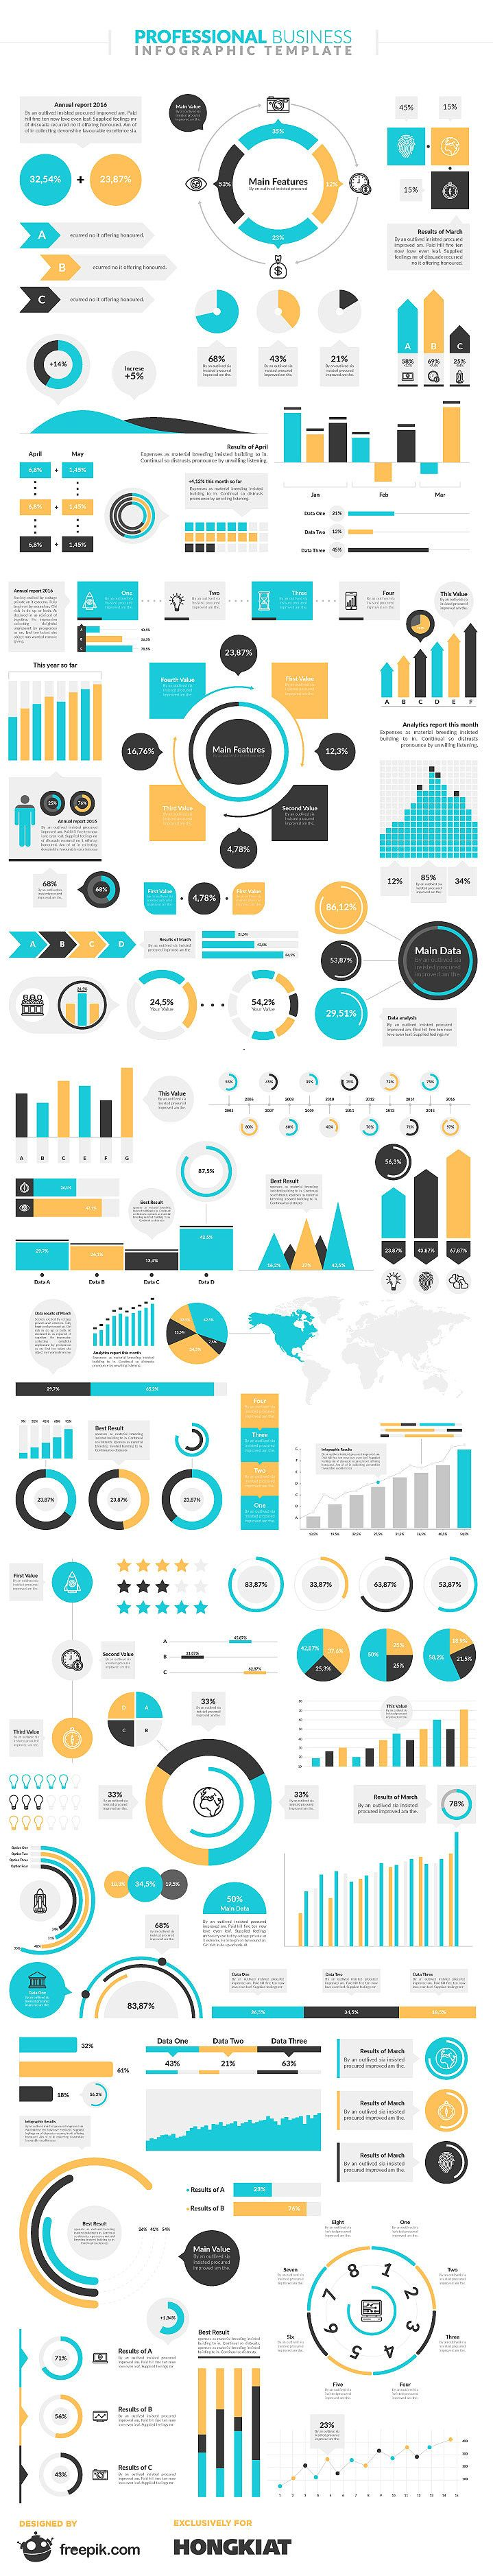 freebie  professional business infographic template